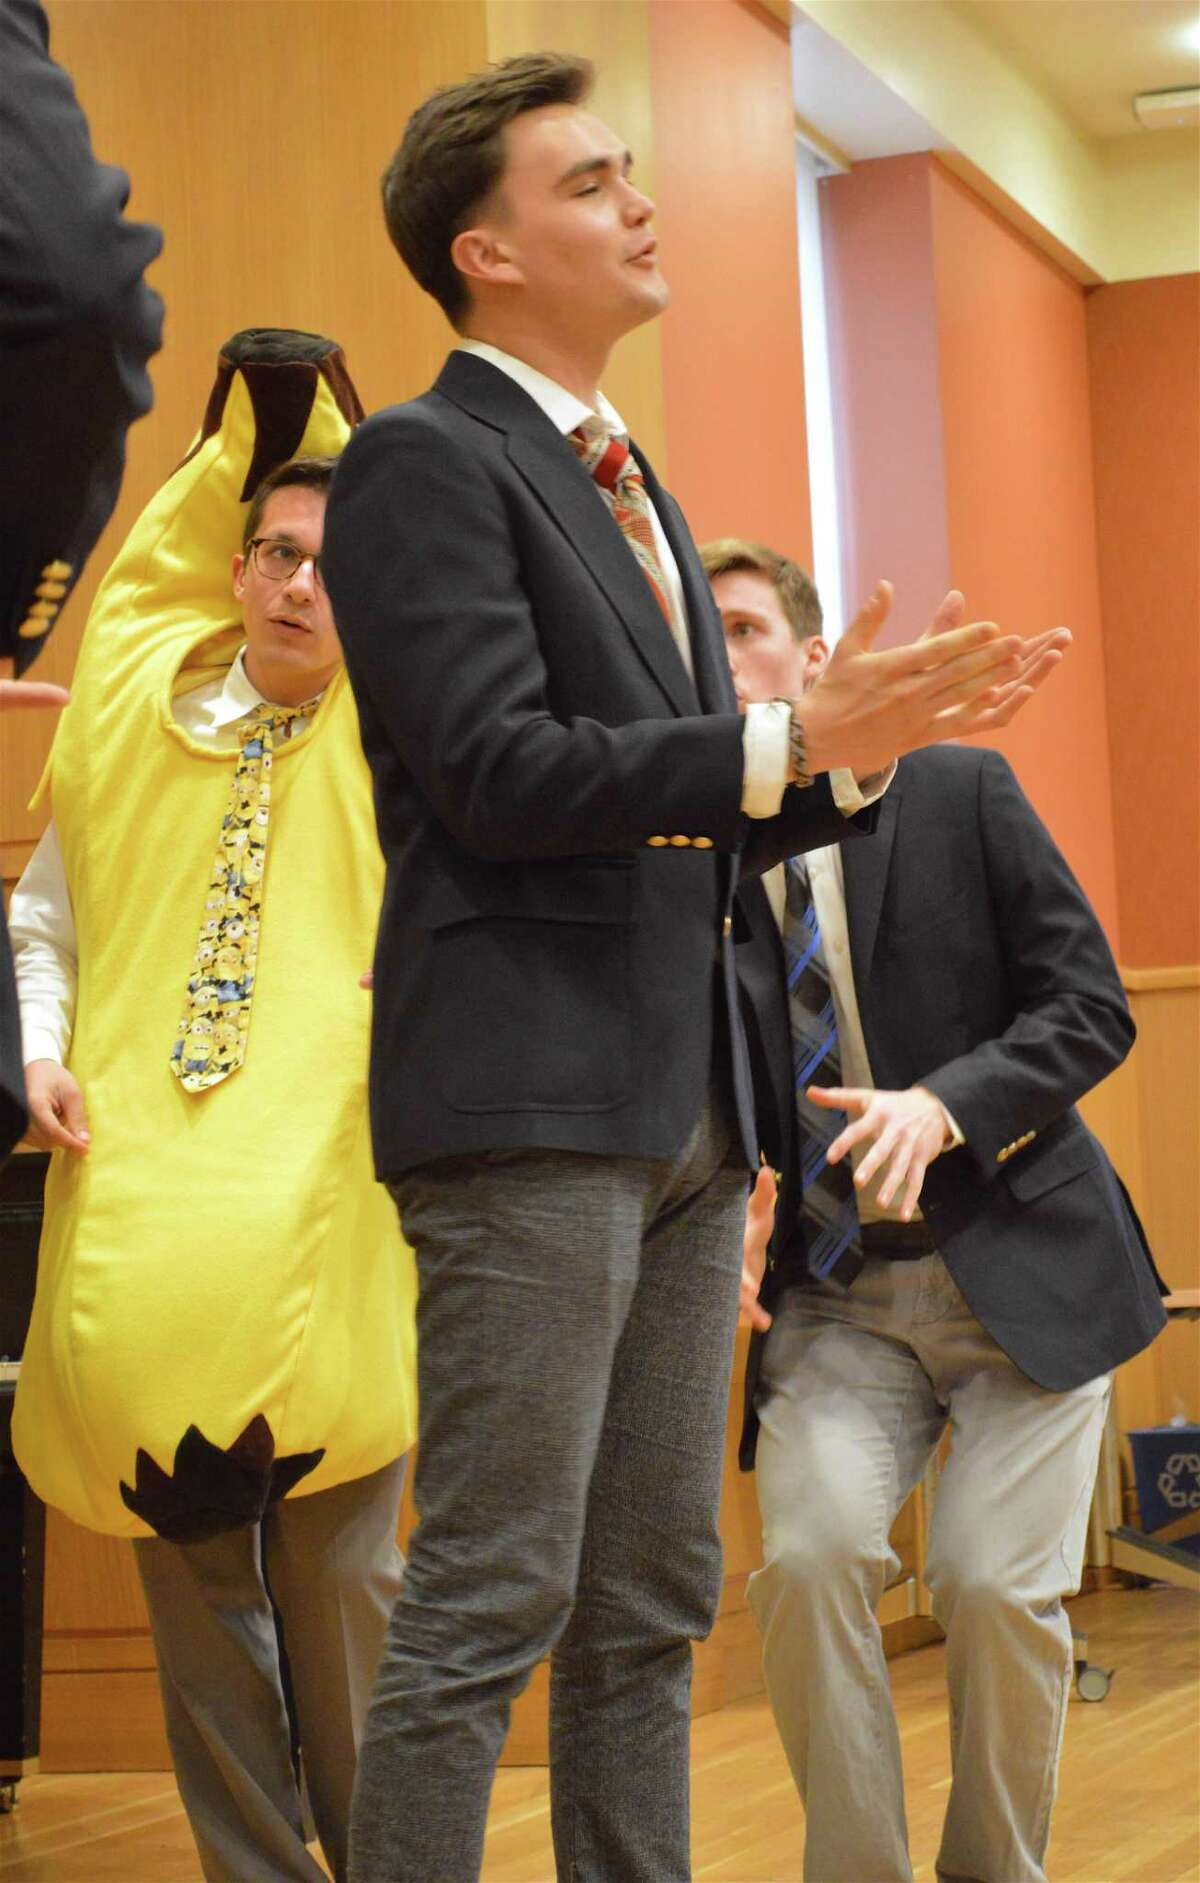 With Andres Pascual-Leone wearing the banana costume behind him, Markus Prostko solos at the performance of Amherst College's a cappella group The Zumbyes, at Darien Library, Sunday, April 15, 2018, in Darien, Conn.